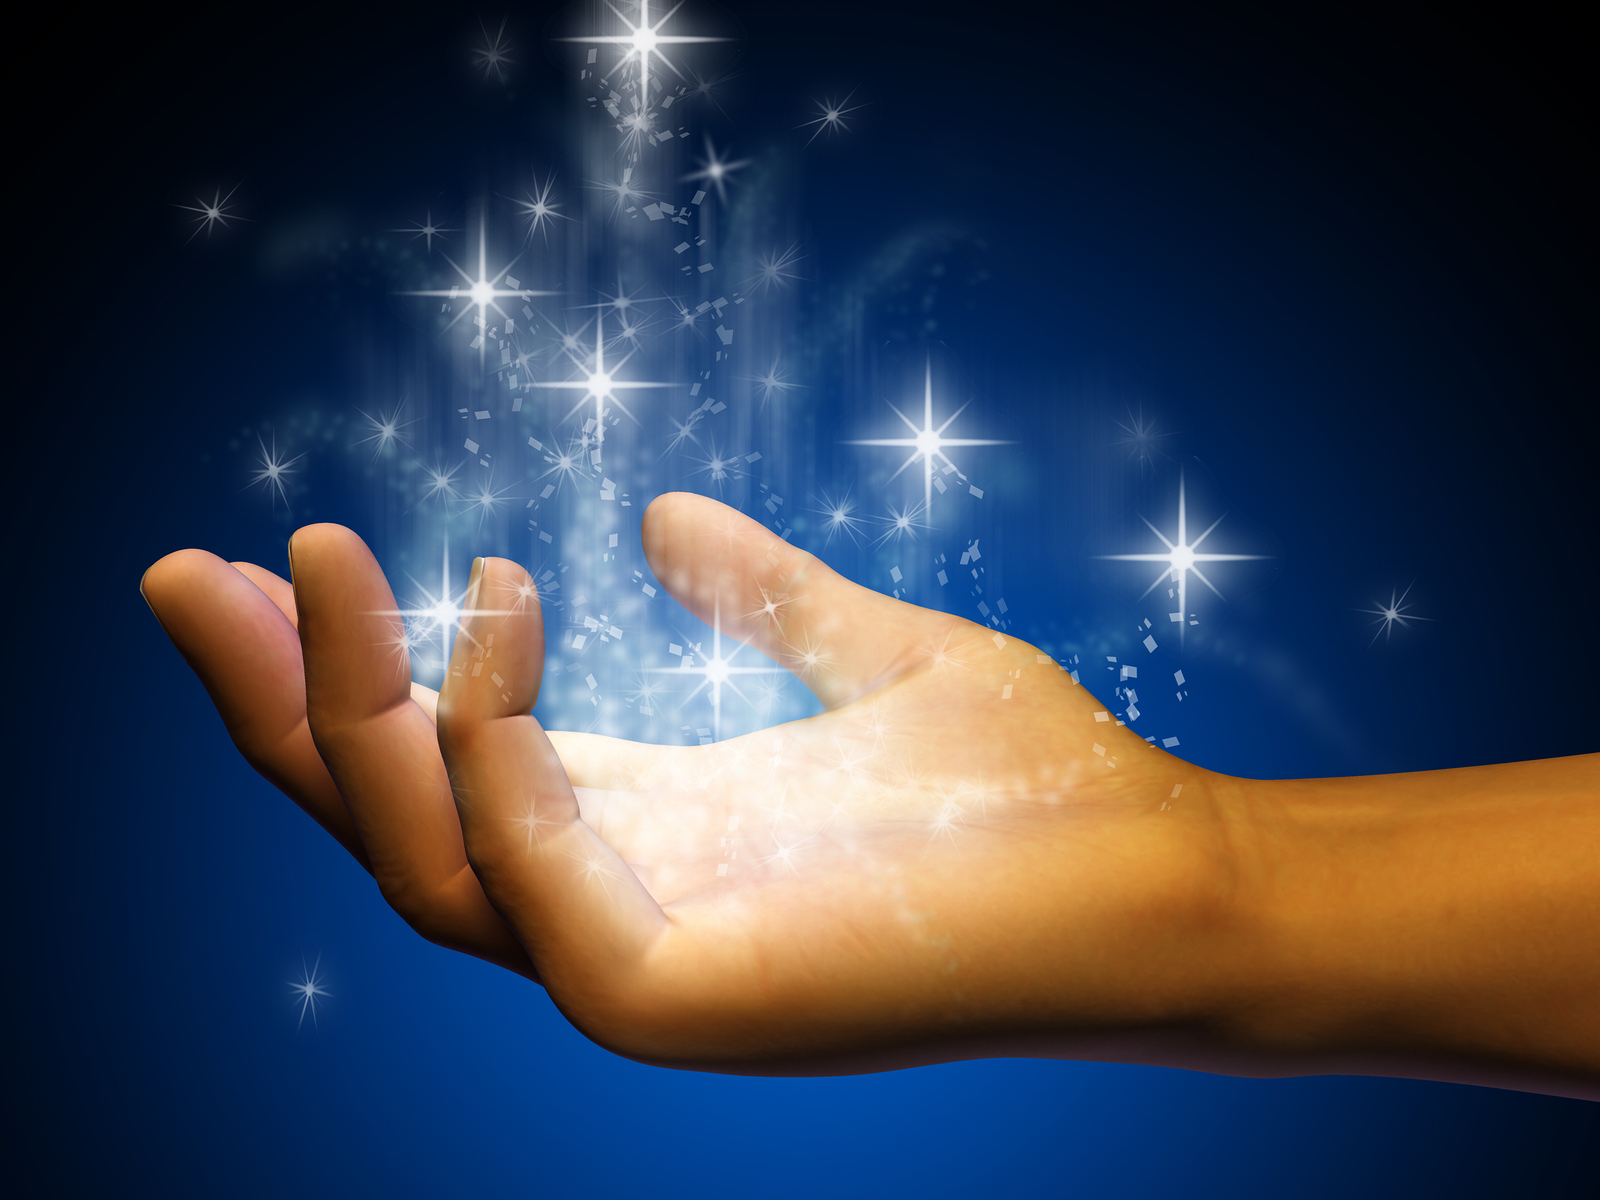 psychic-mediums-online-psychic-readings